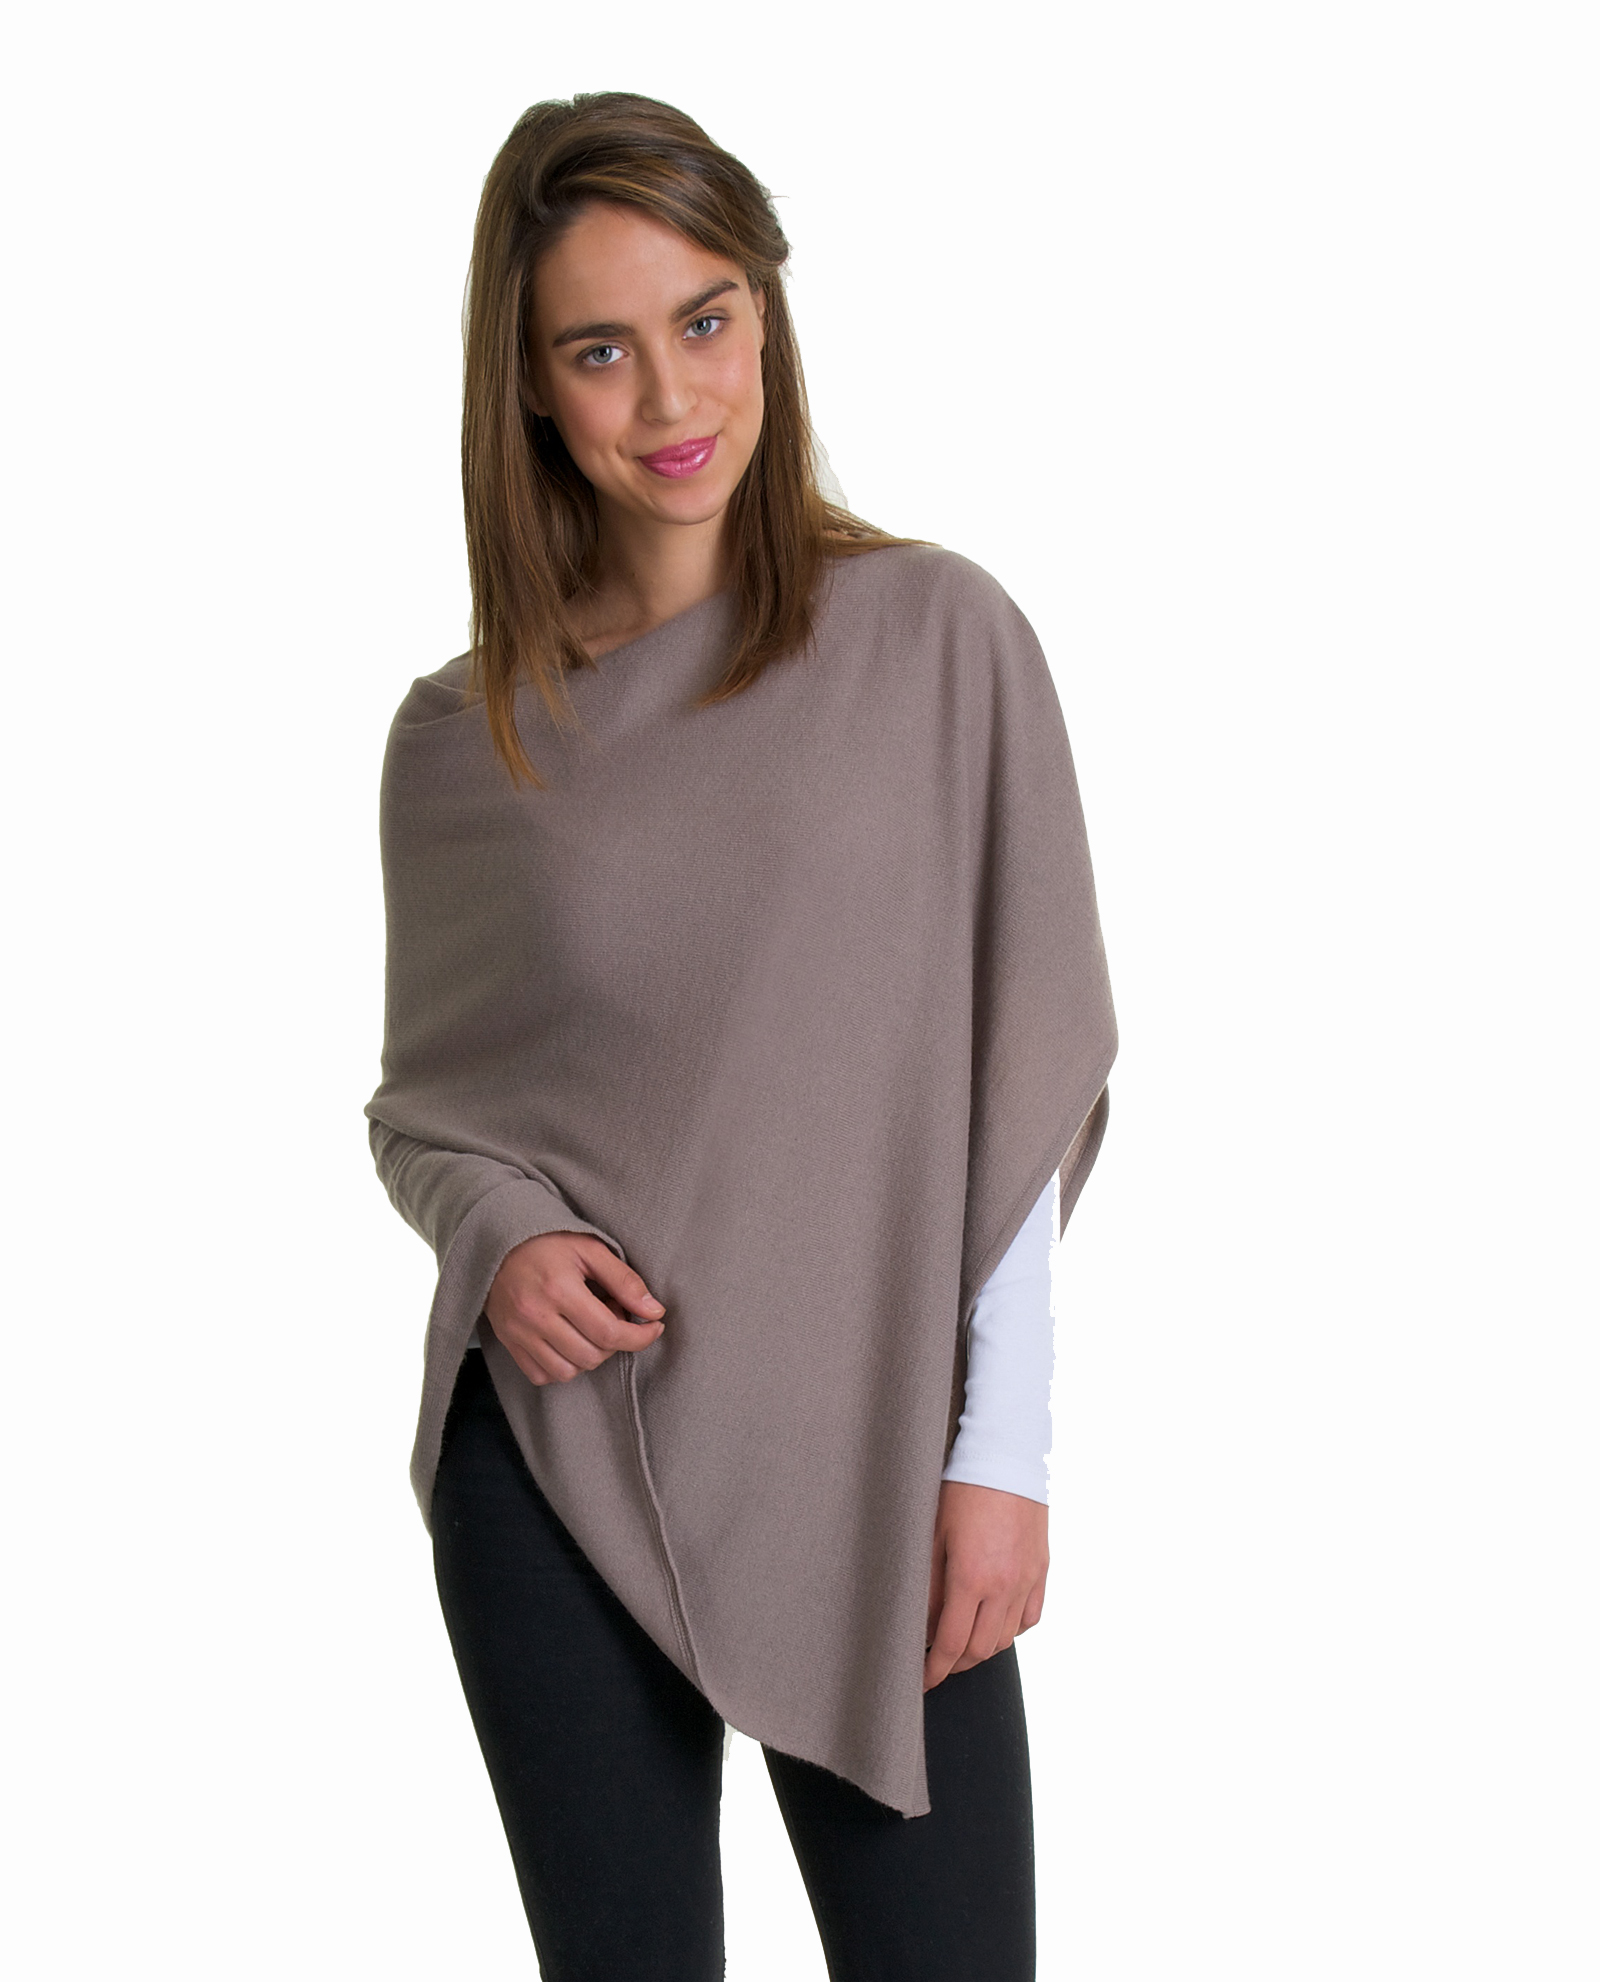 Be the first to review cashmere poncho cancel reply